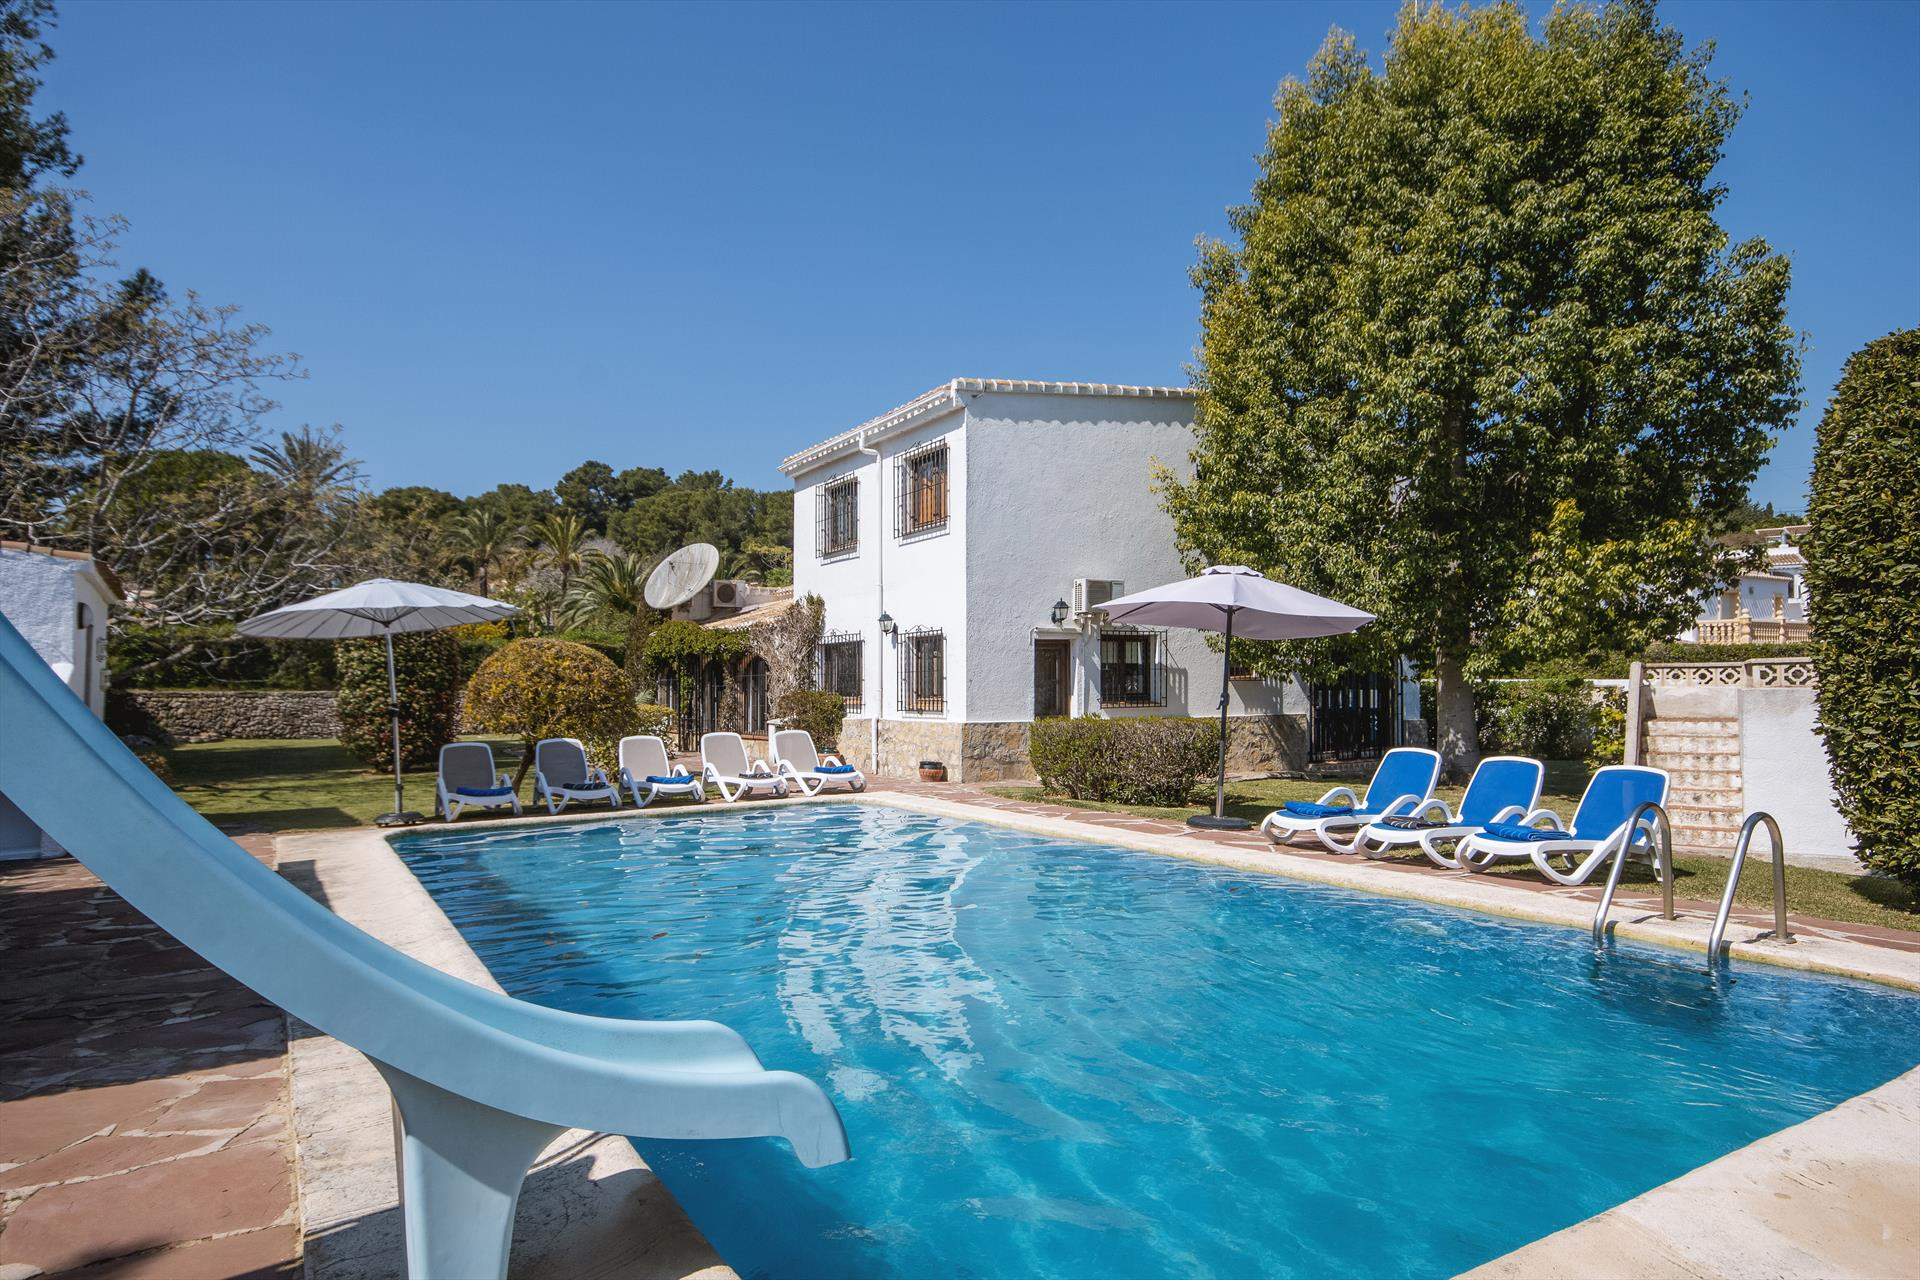 Villa Escocia 8 pax, Large and comfortable villa  with private pool in Javea, on the Costa Blanca, Spain for 8 persons.....